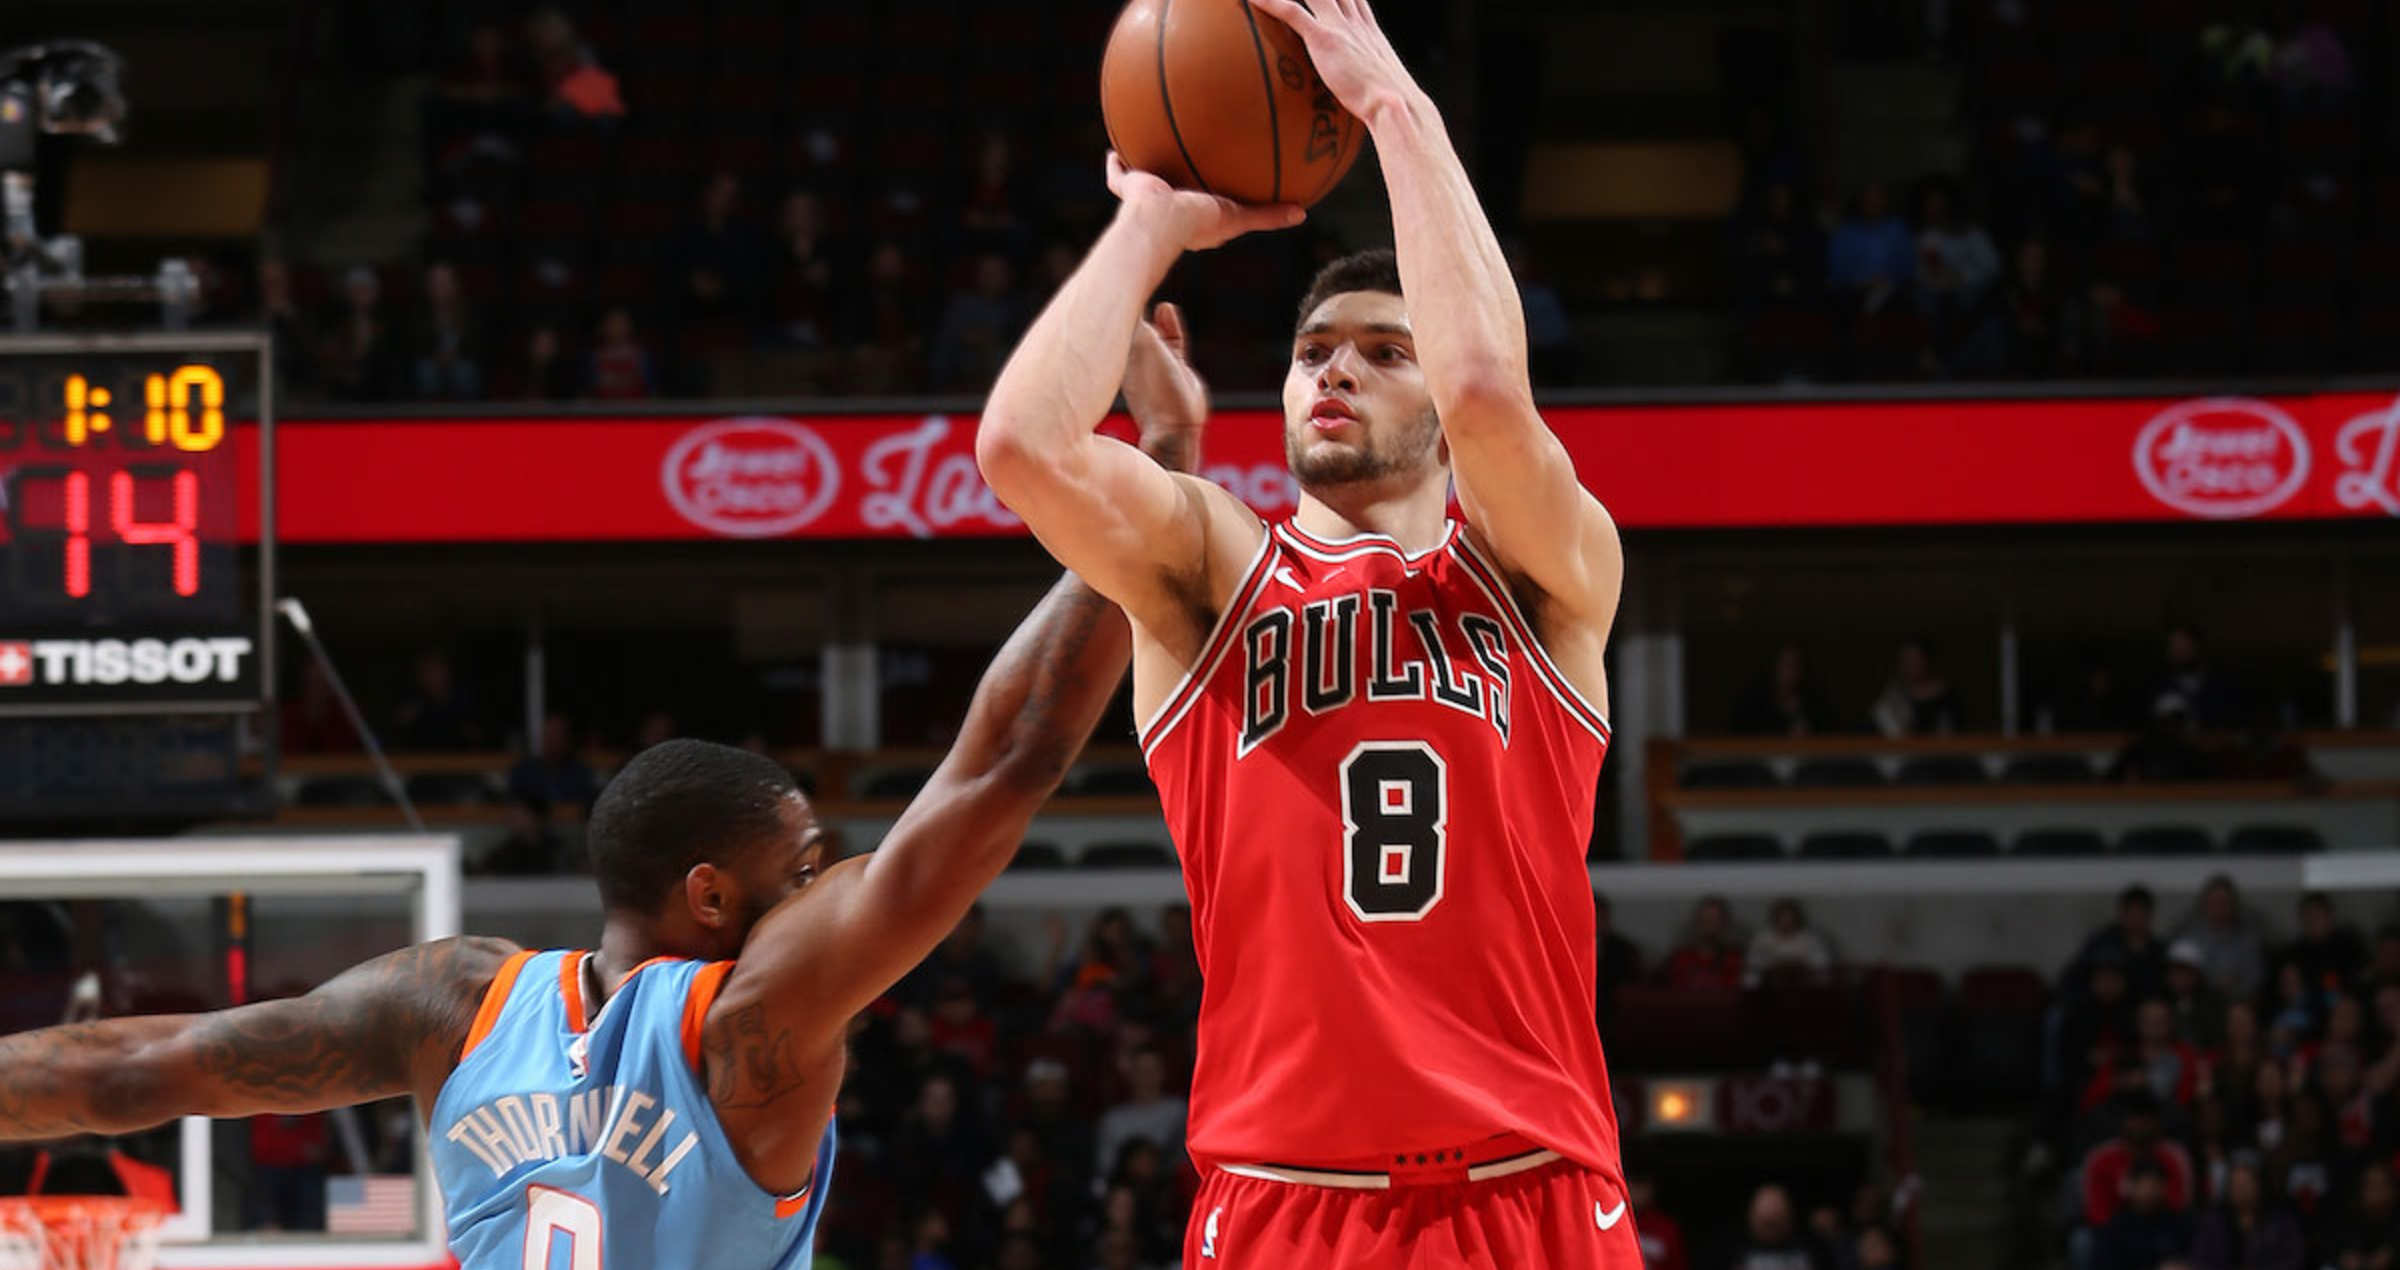 Zach LaVine shoots the ball during a game against the Los Angeles Clippers